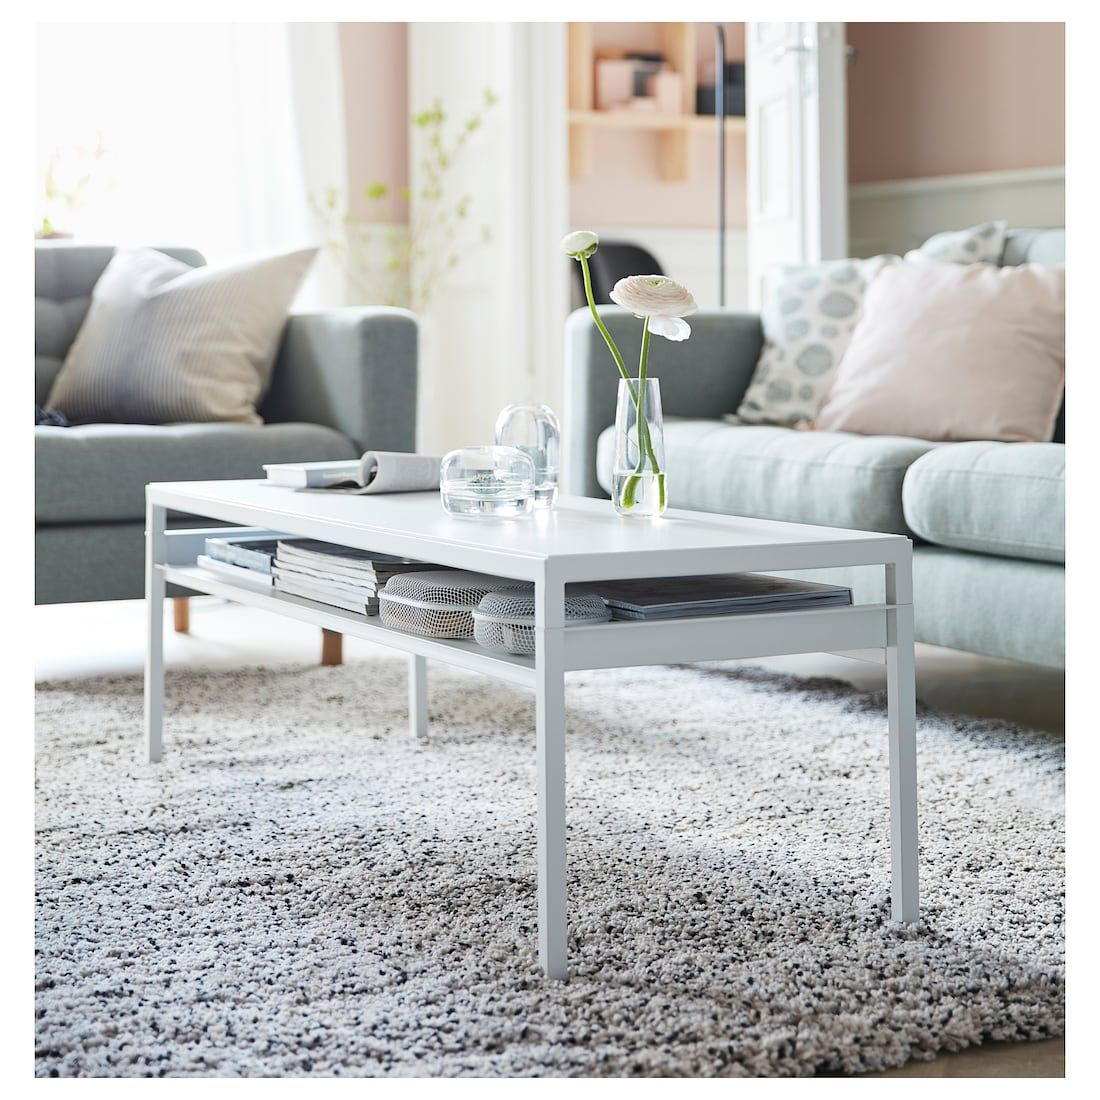 Home Furniture Store Modern Furnishings Décor Ikea Lack Coffee Table Calm Living Room Coffee Table